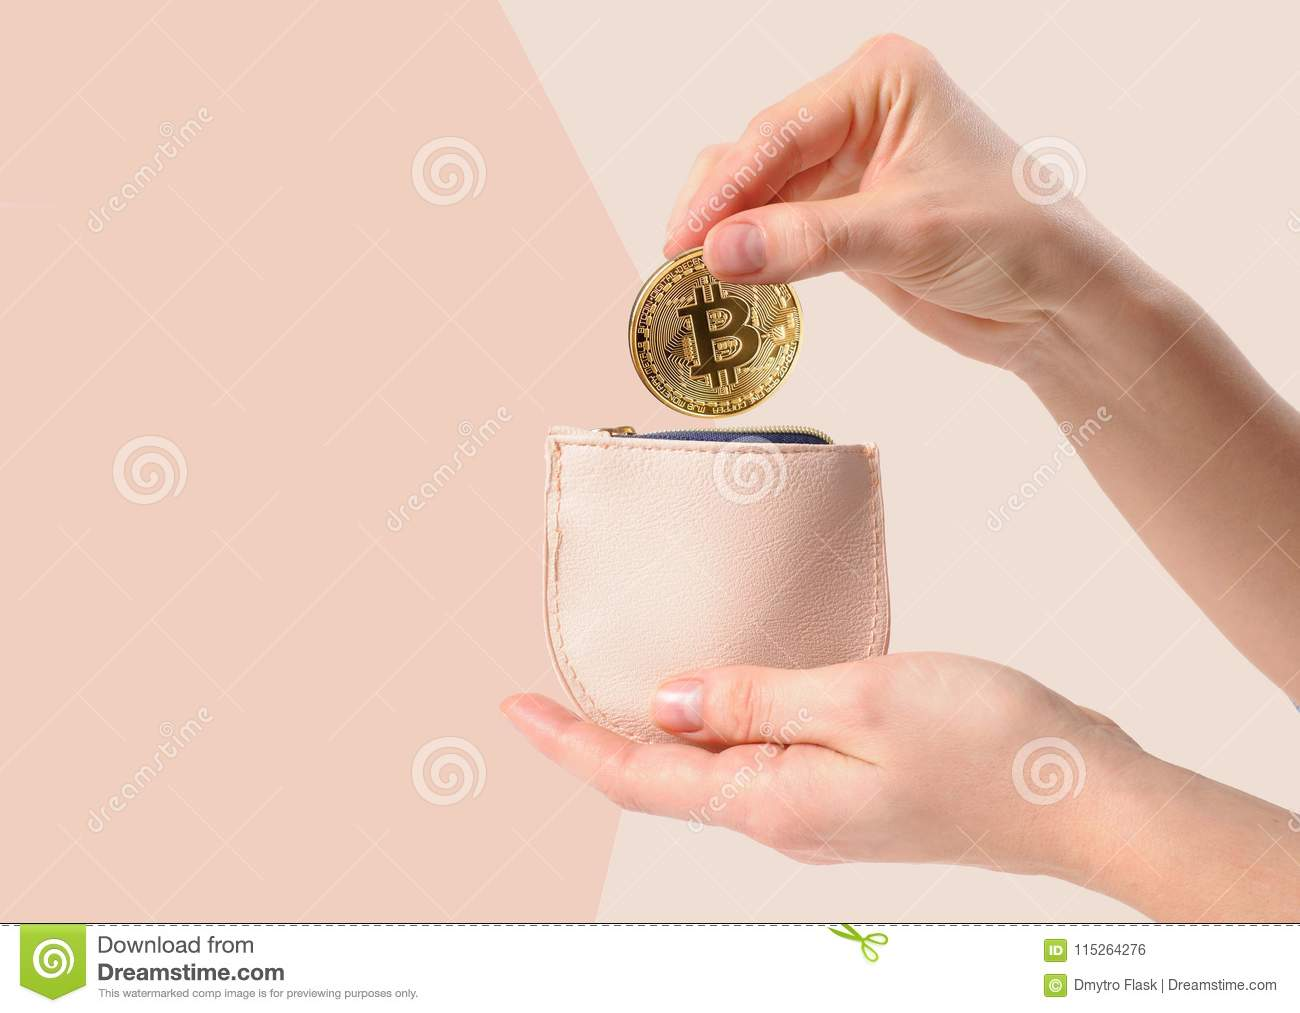 putting money into a cryptocurrency wallet